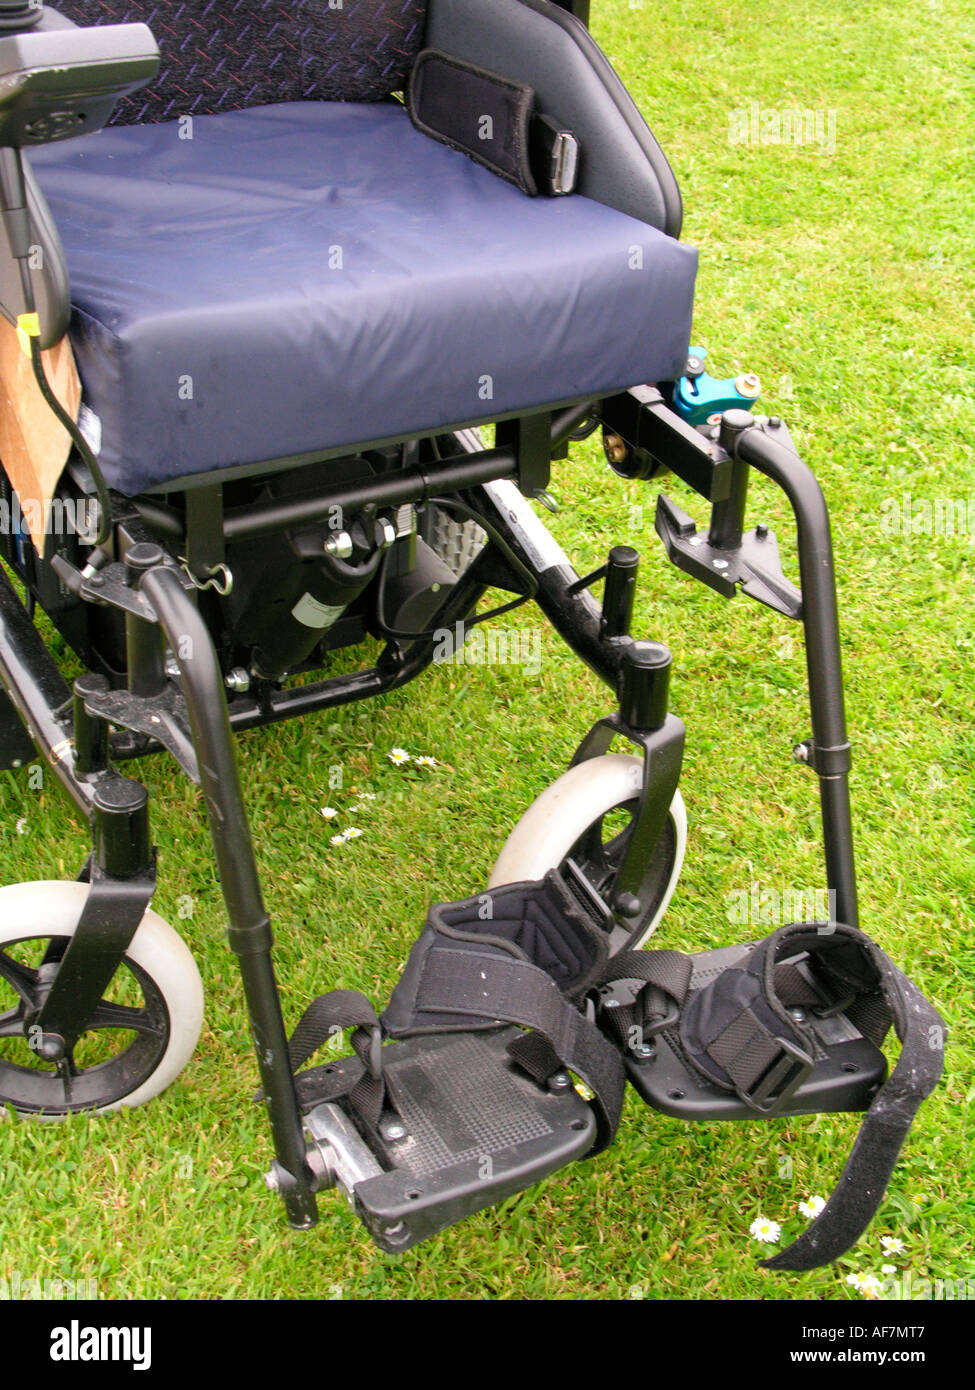 spectra plus battery powered wheelchair - showing the foot rest with velcro straps for supports - Stock Image